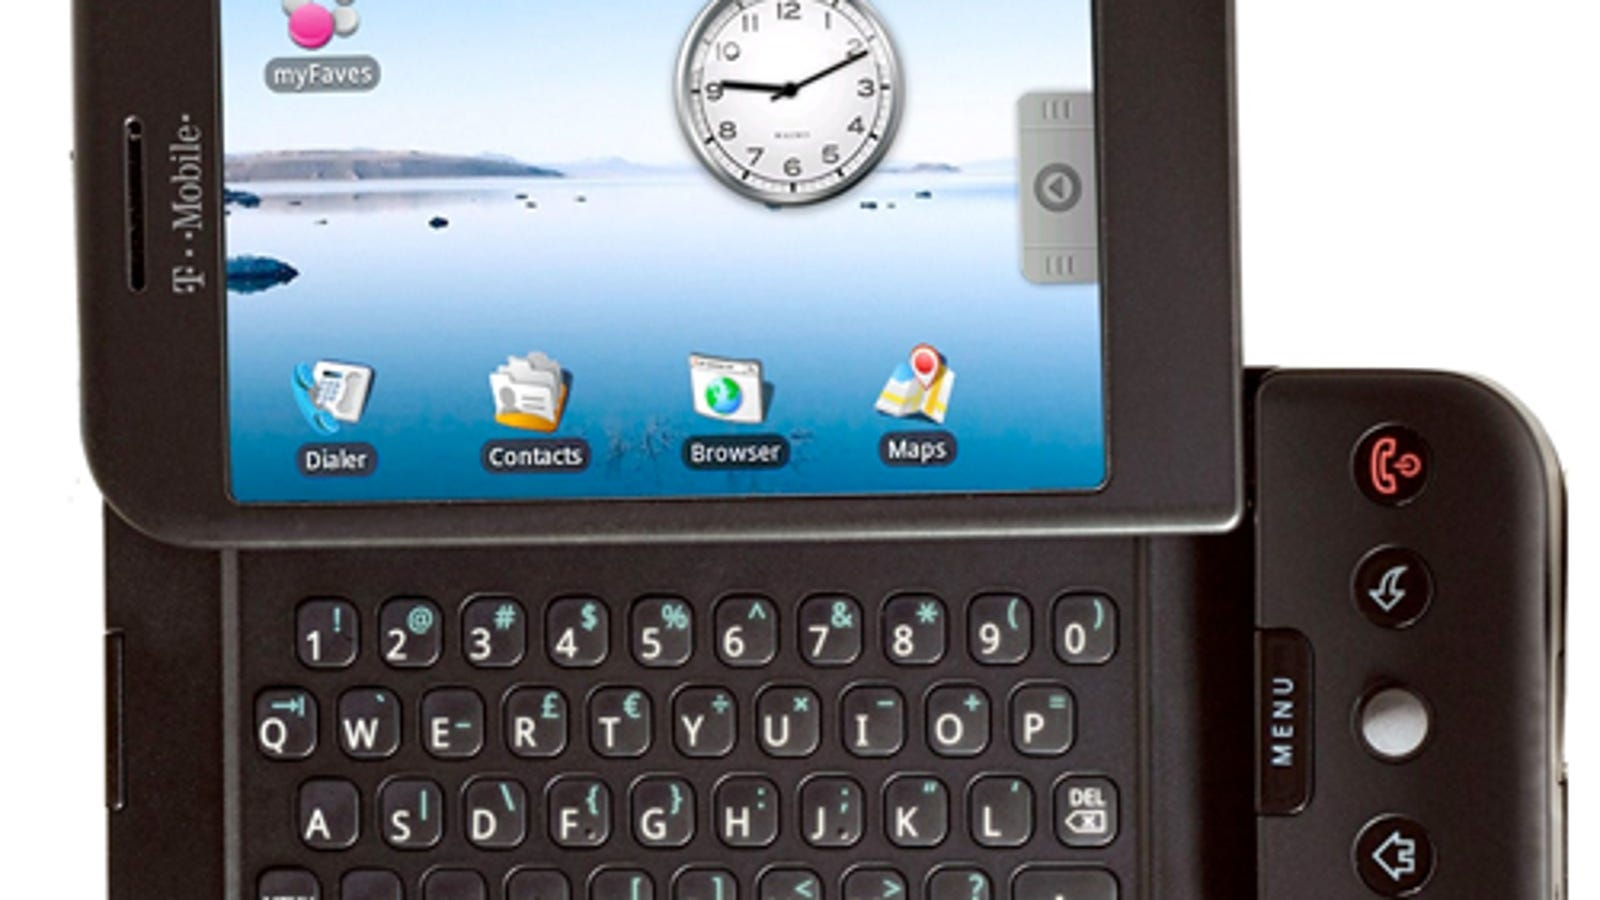 Rumor: HTC Android Phone With Slide-Out QWERTY Keypad